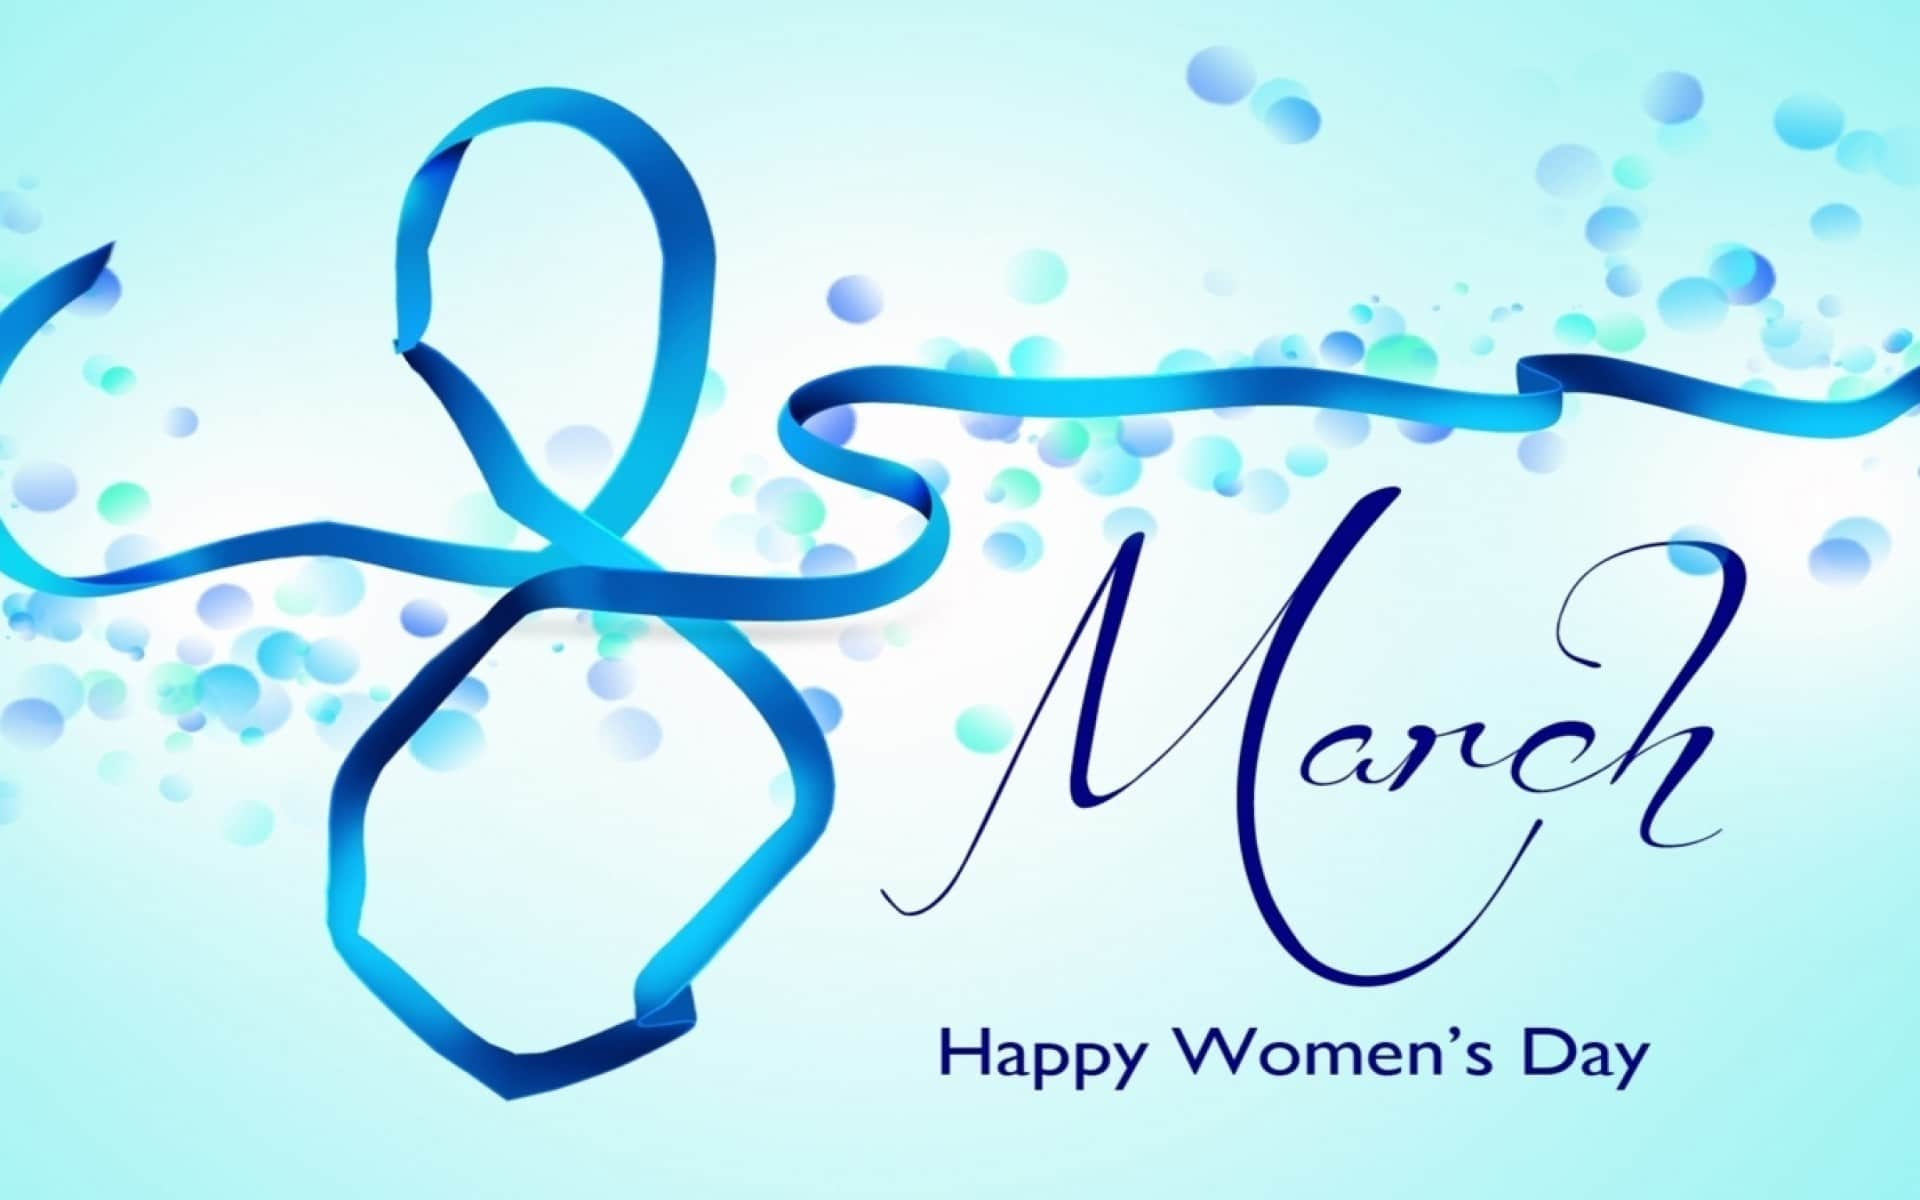 International Women's Day Photo and Desktop images